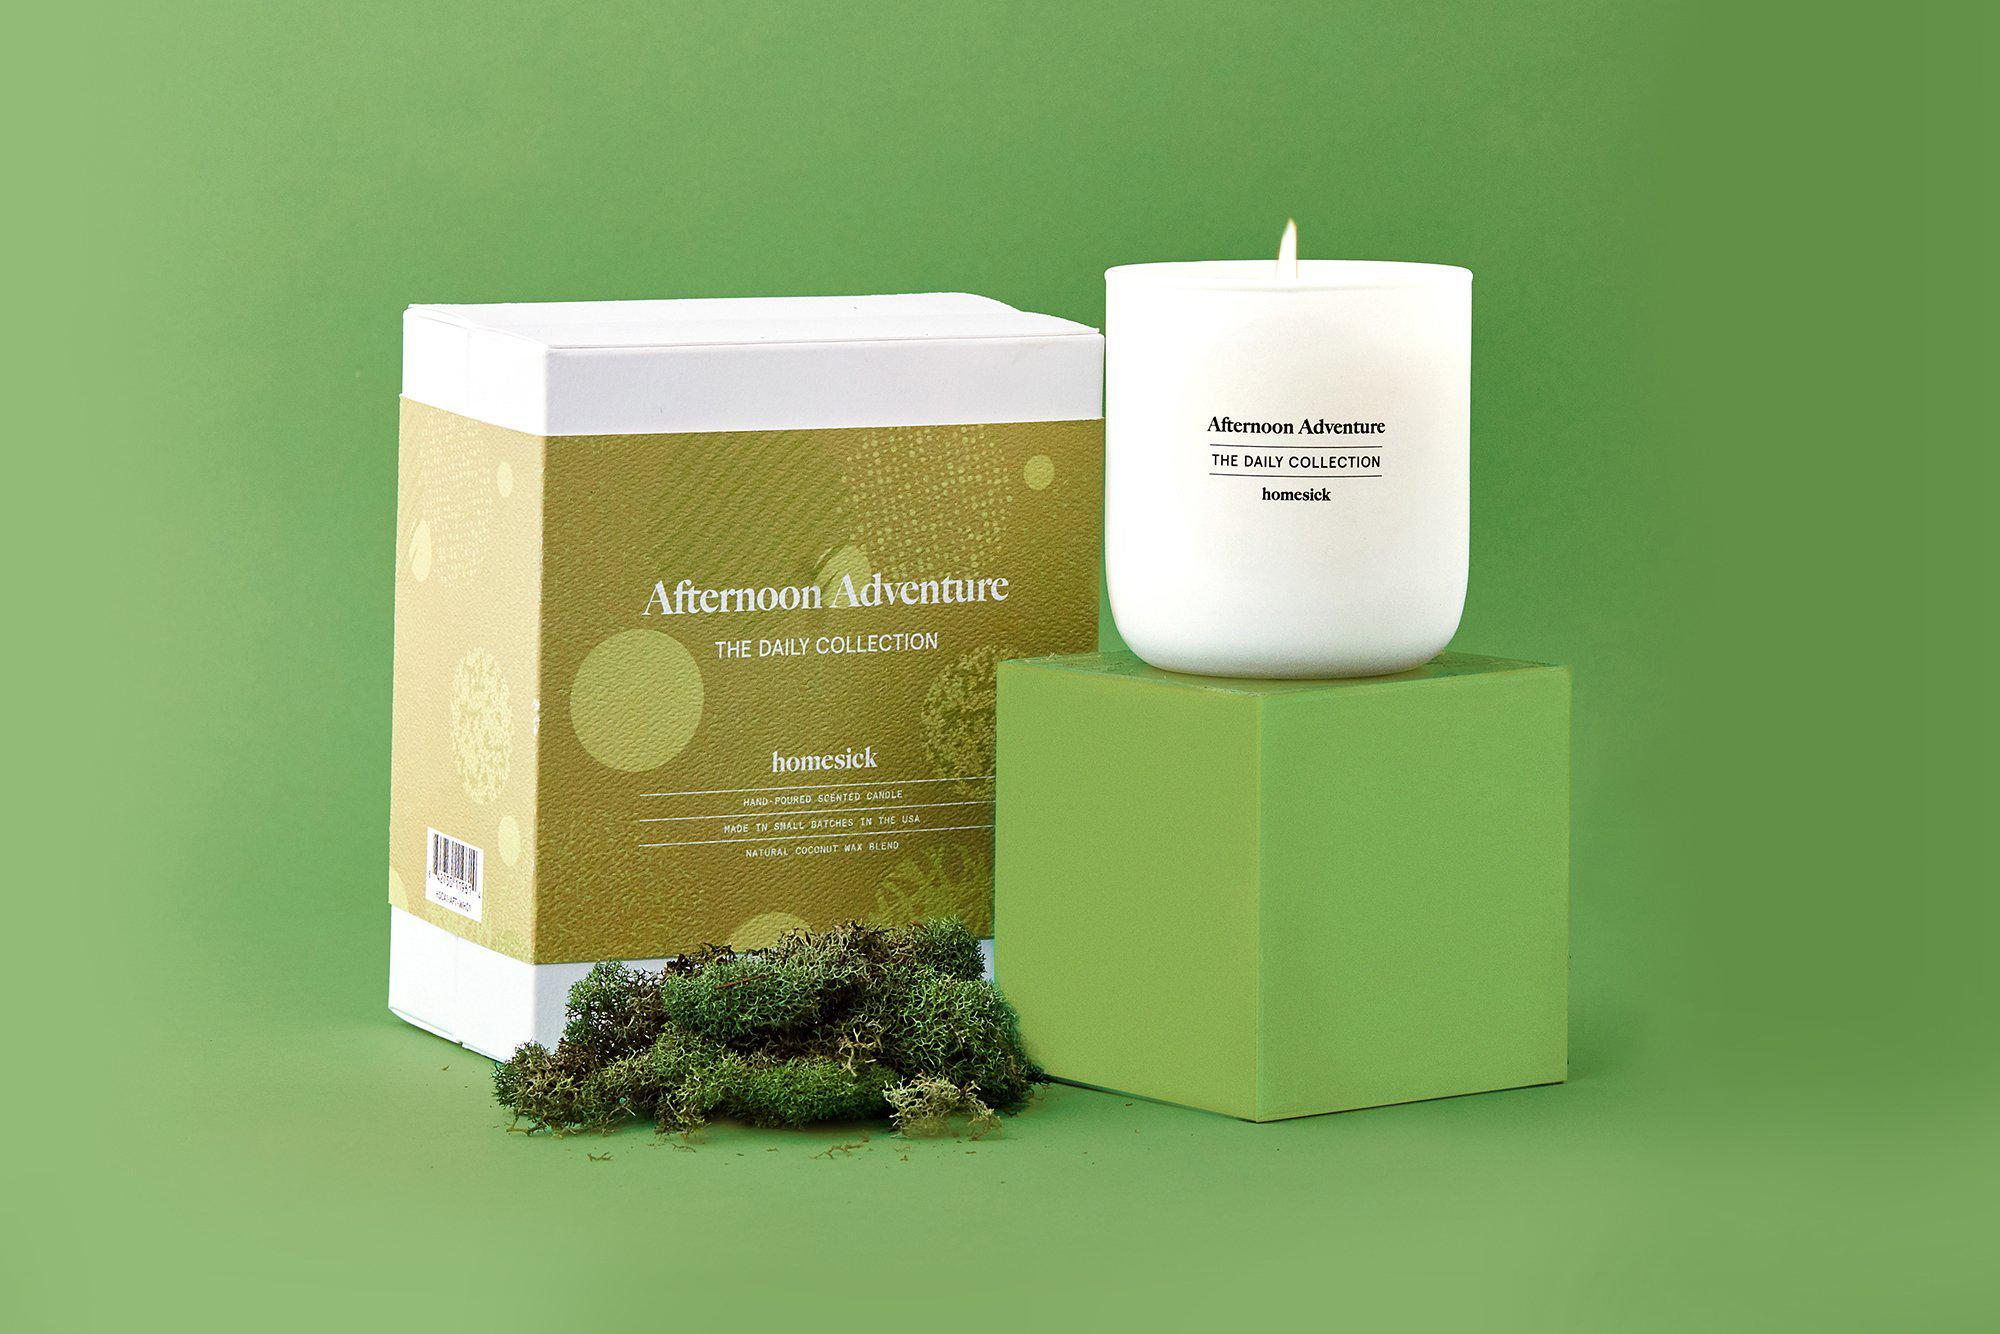 Afternoon Adventure Candle